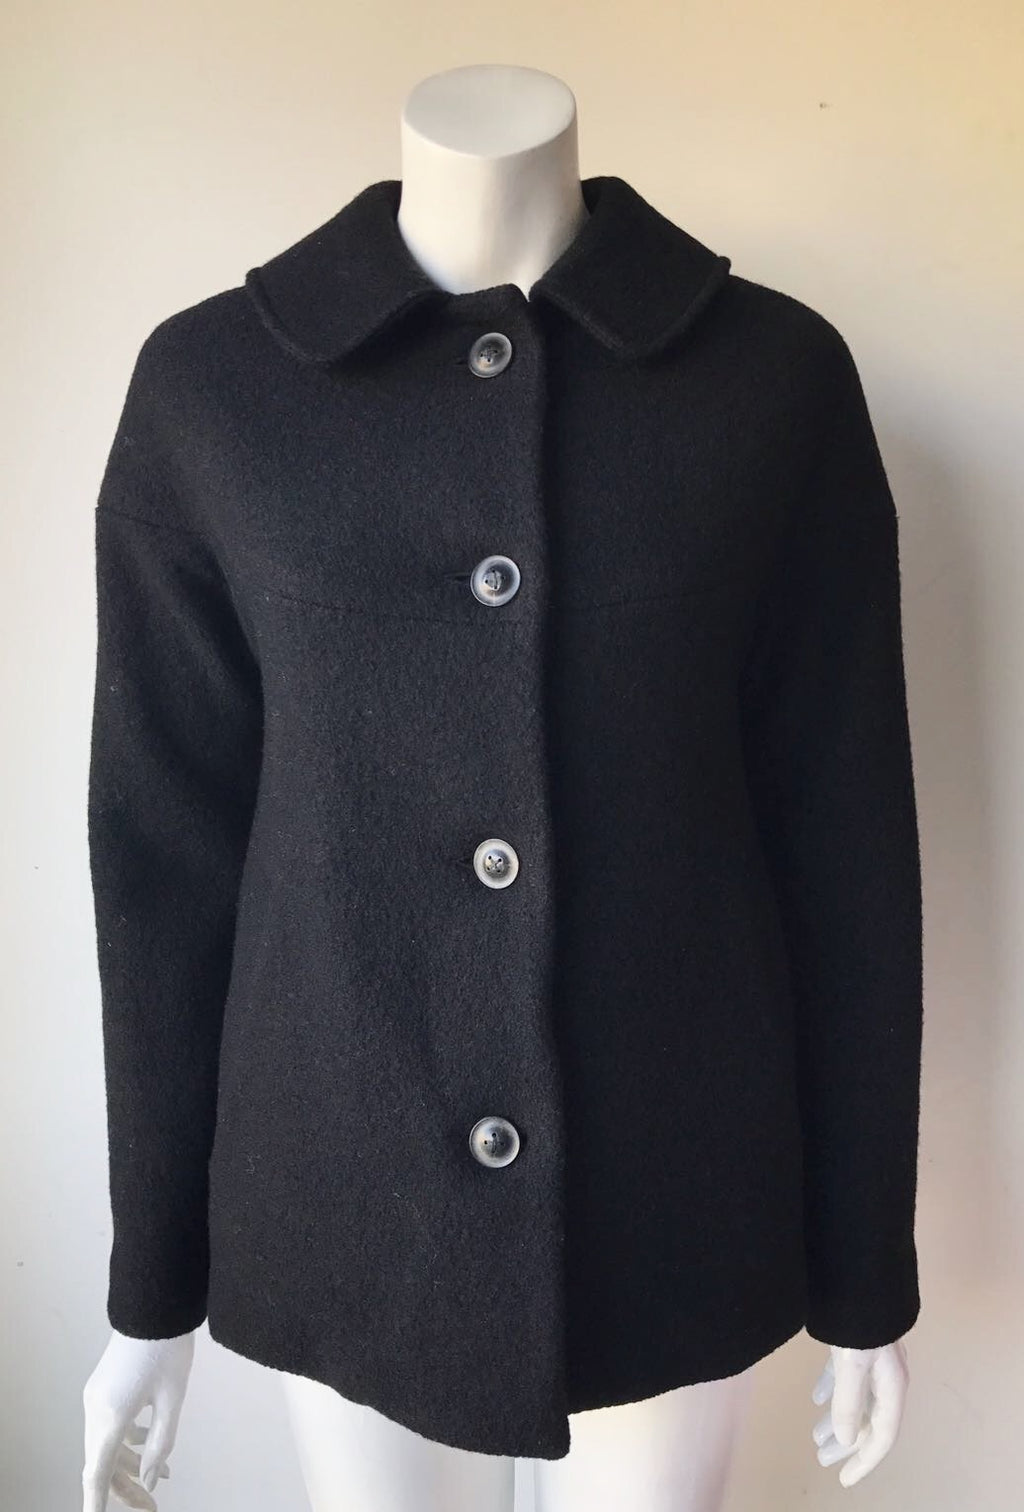 Built By Wendy Black Peacoat Size XS